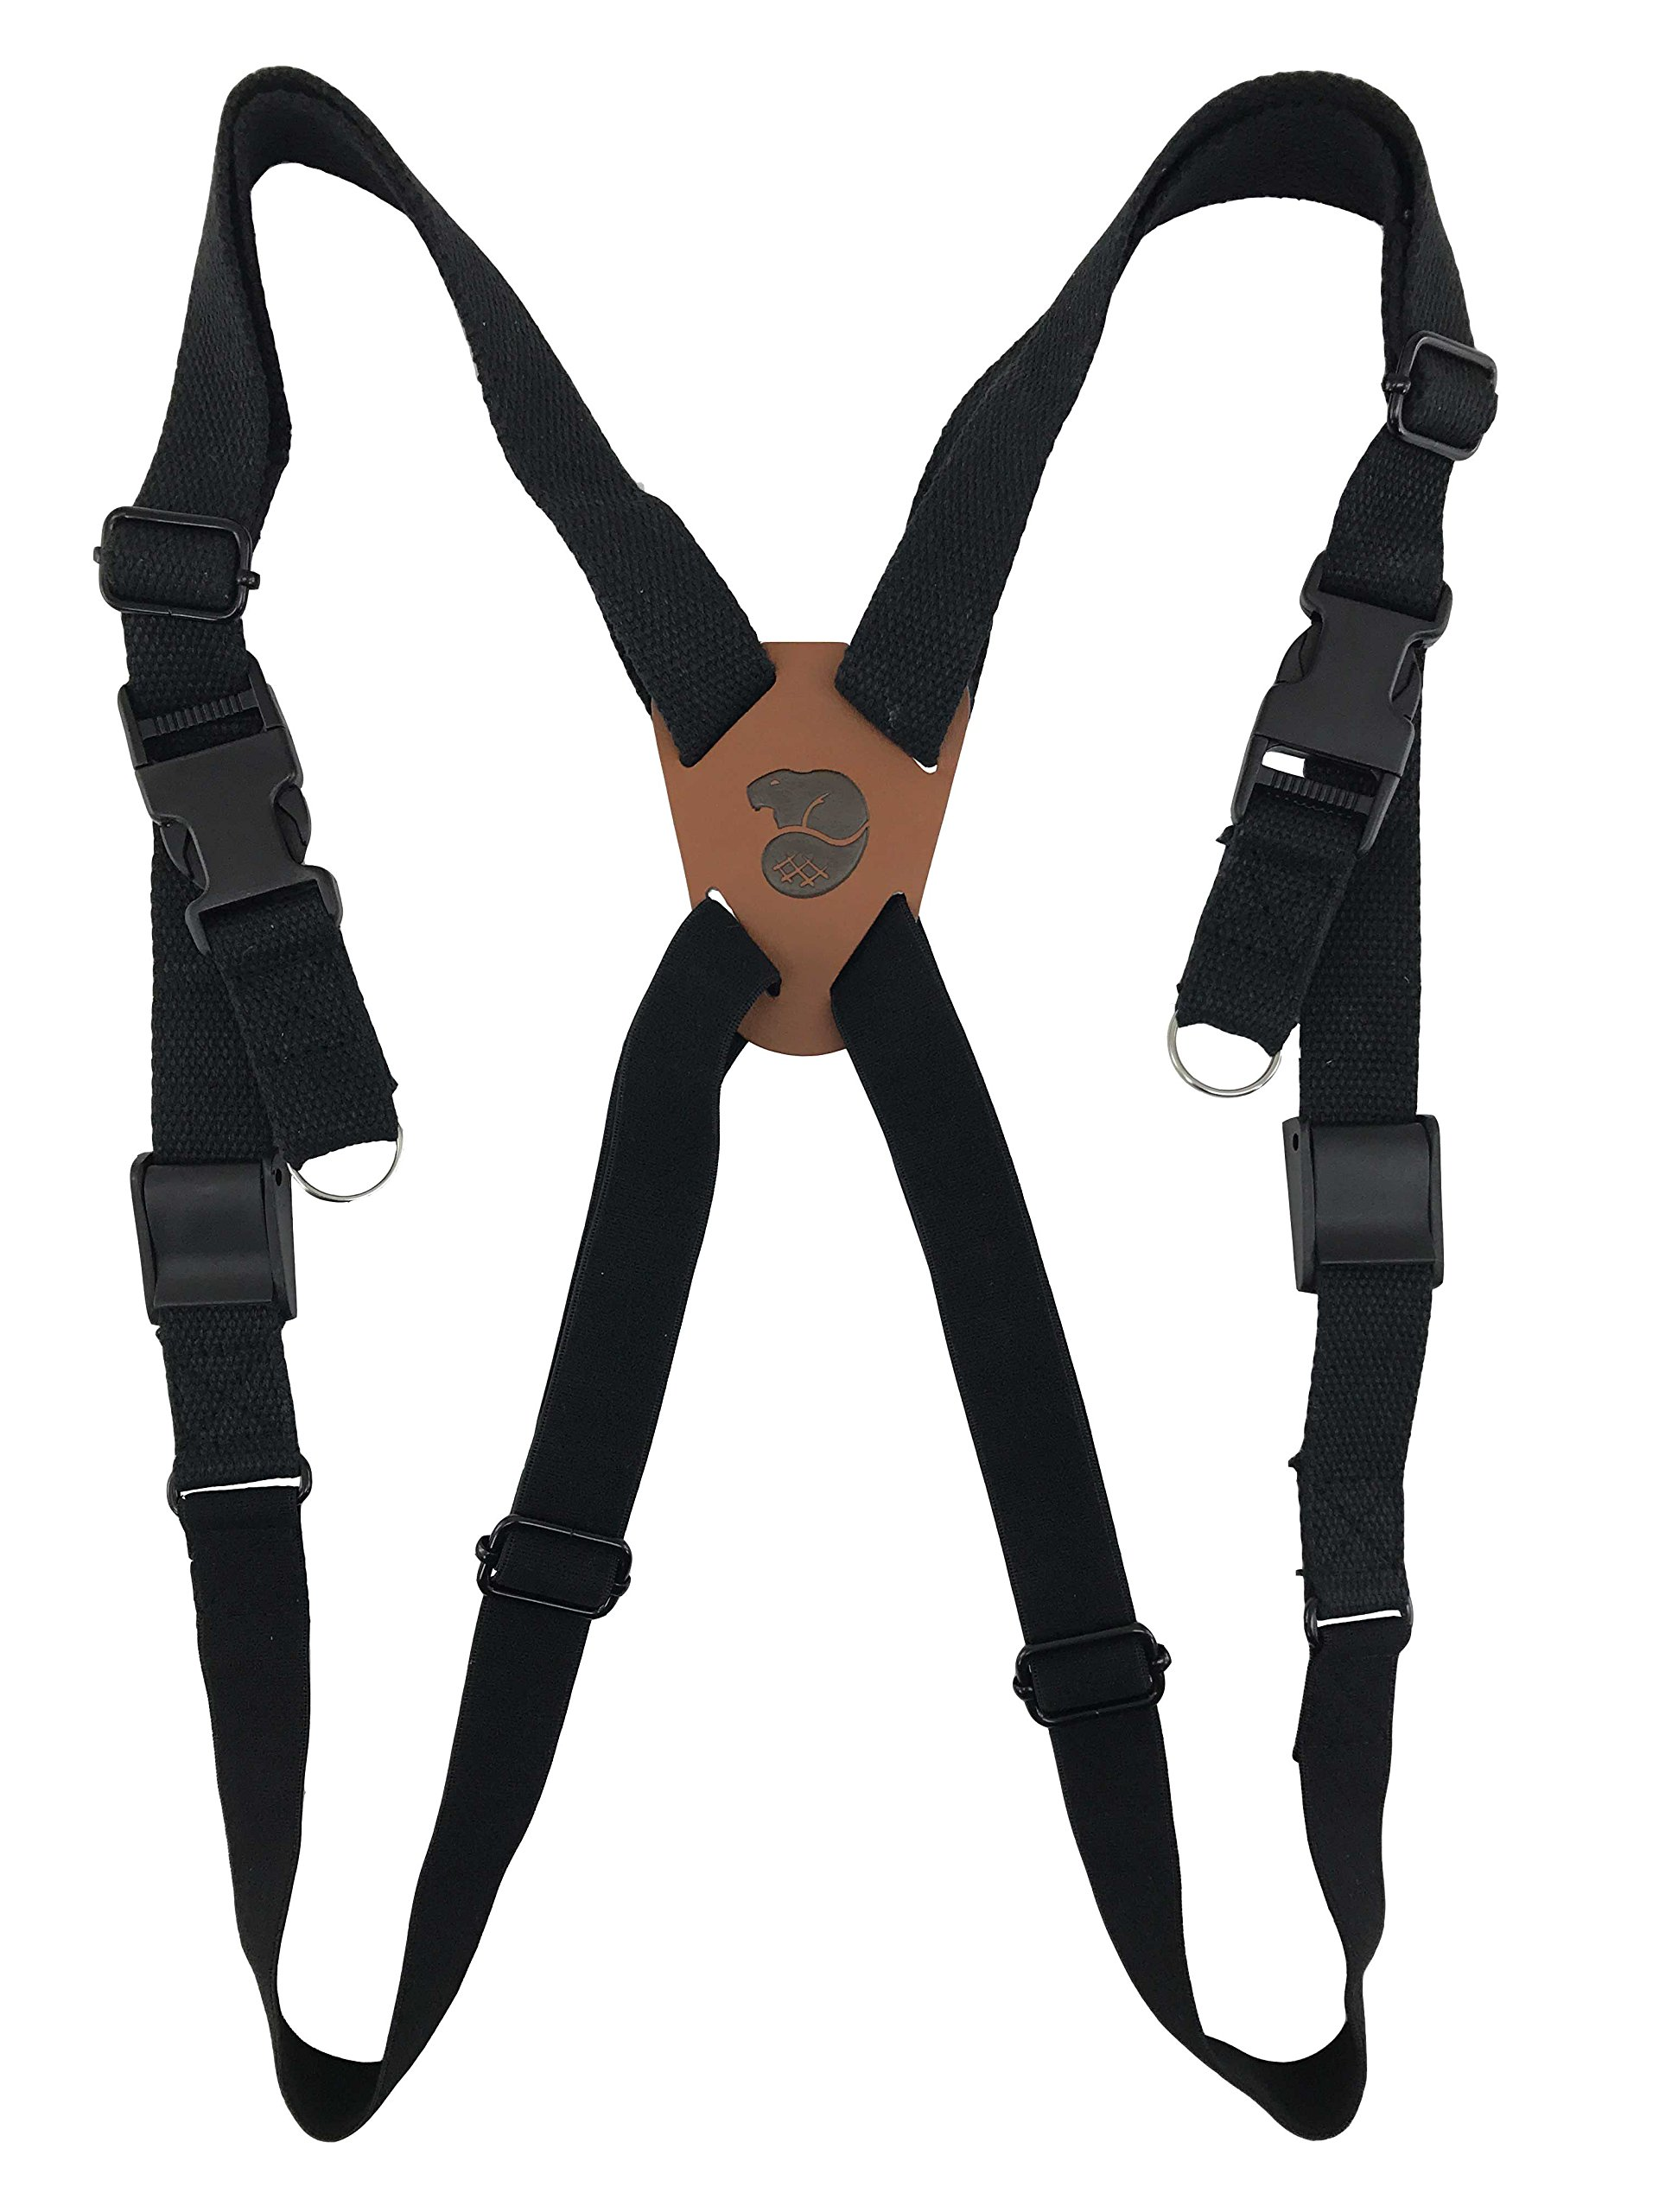 Binocular Shoulder Harness Quick Release Bino Camera Straps by Bever Products